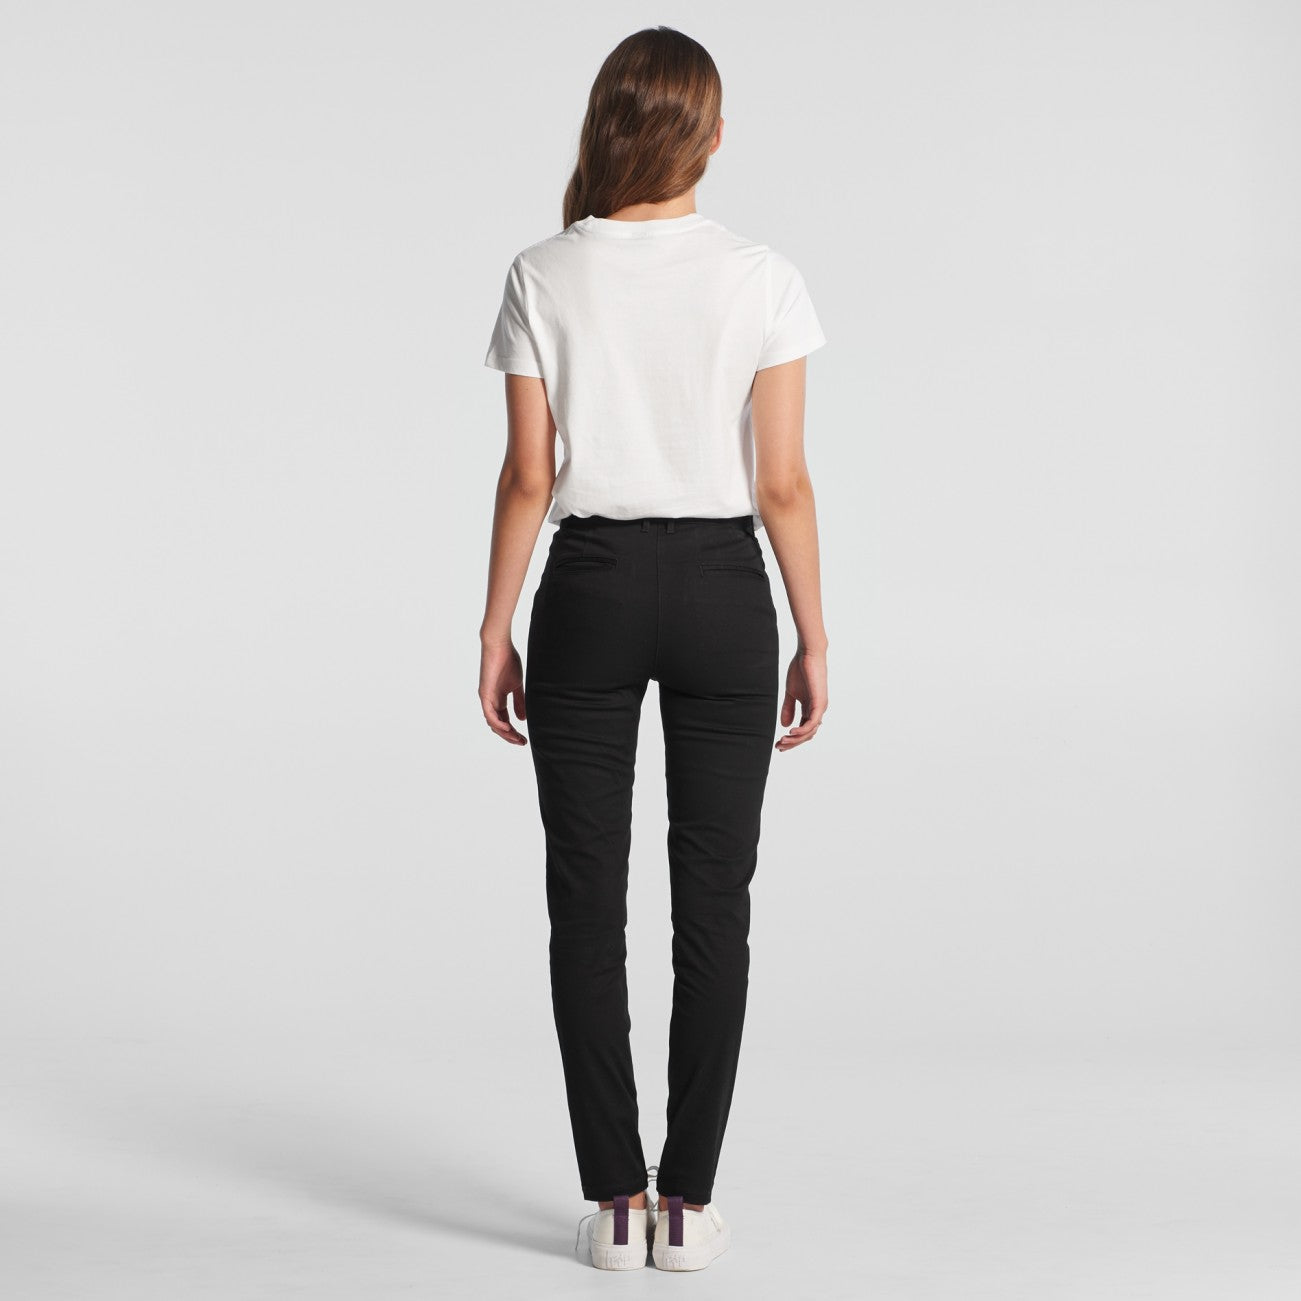 X-MAS WOMENS PANT & SHIRT PACKAGE DEAL - PACK NO. 38